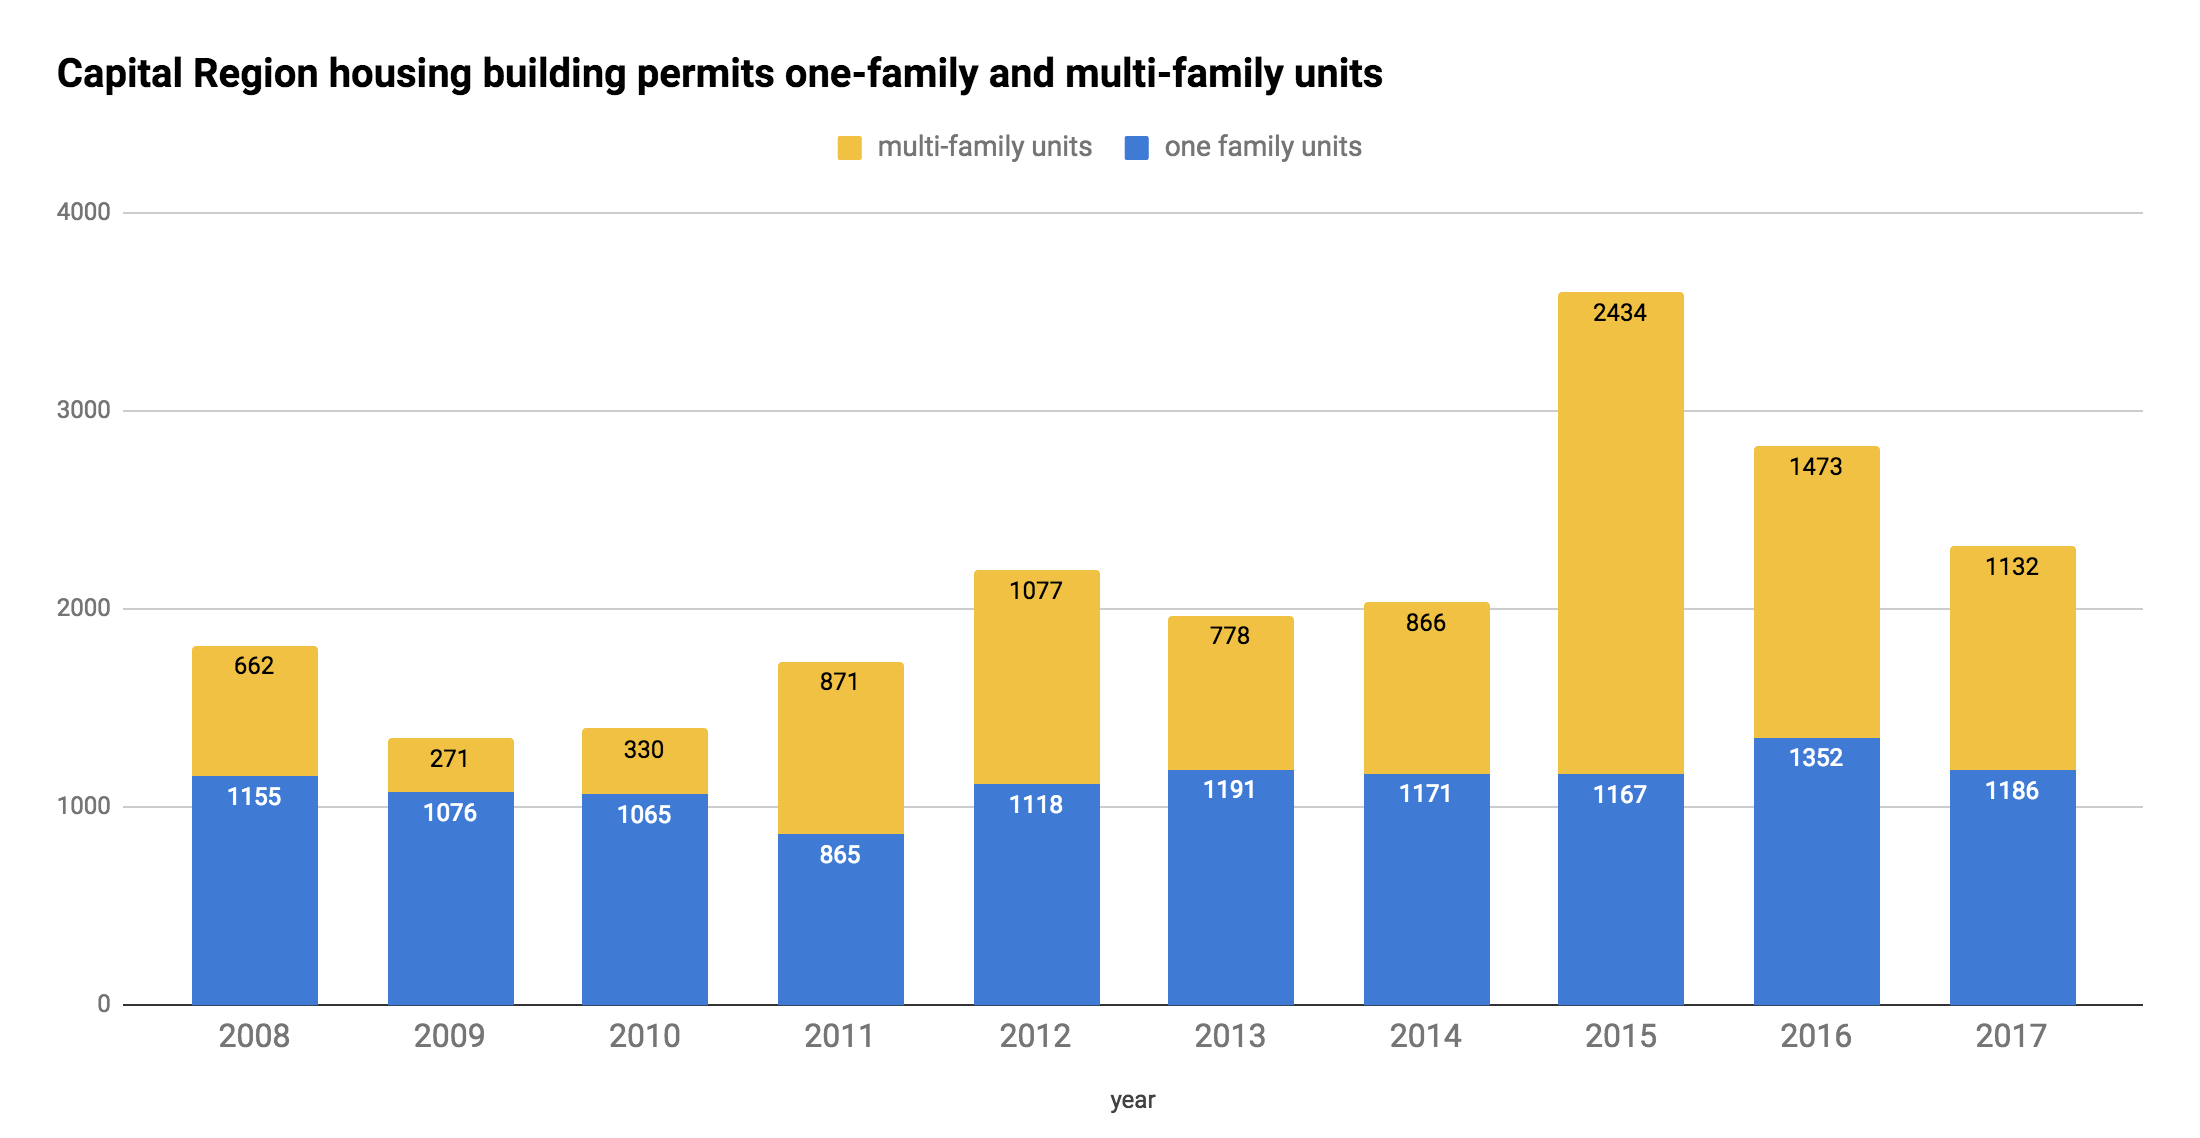 Capital_Region_building_permit_residential_units_single_and_multi_2008-2017.png